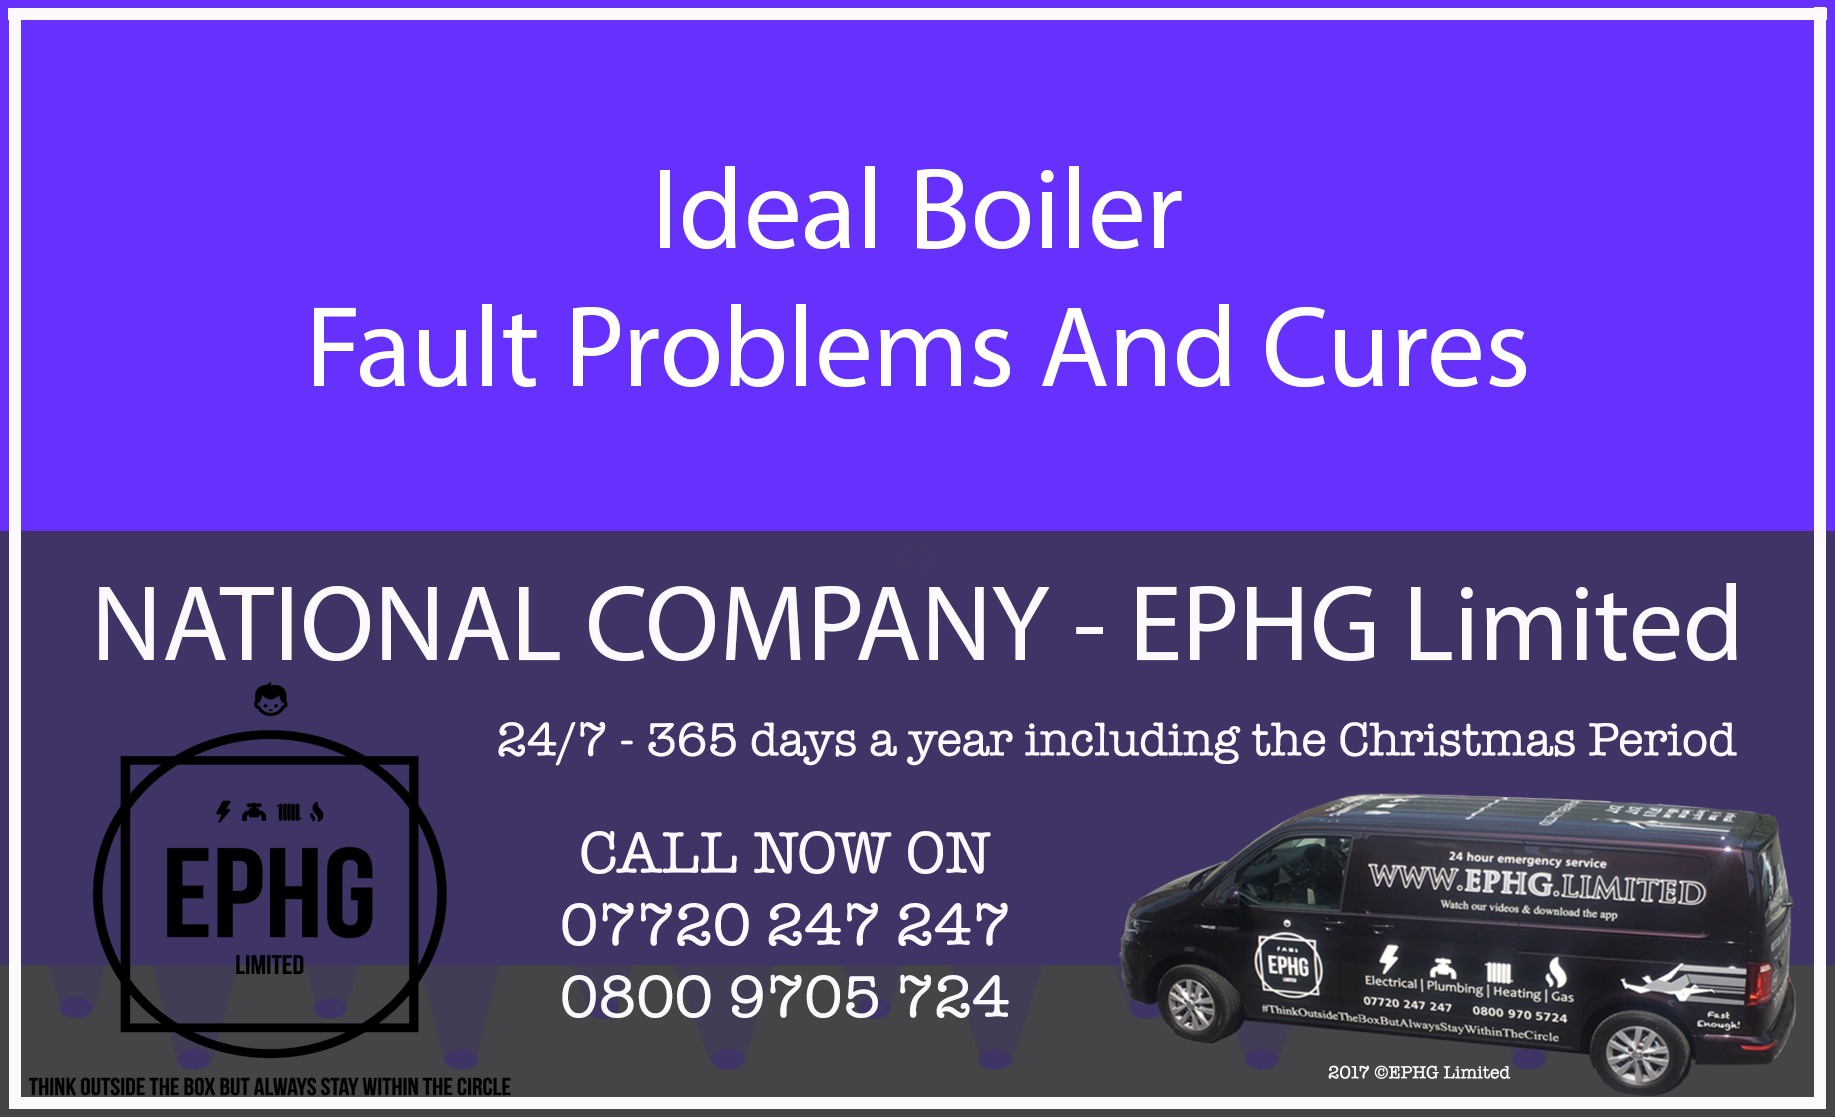 Ideal Boiler Problems And Cures